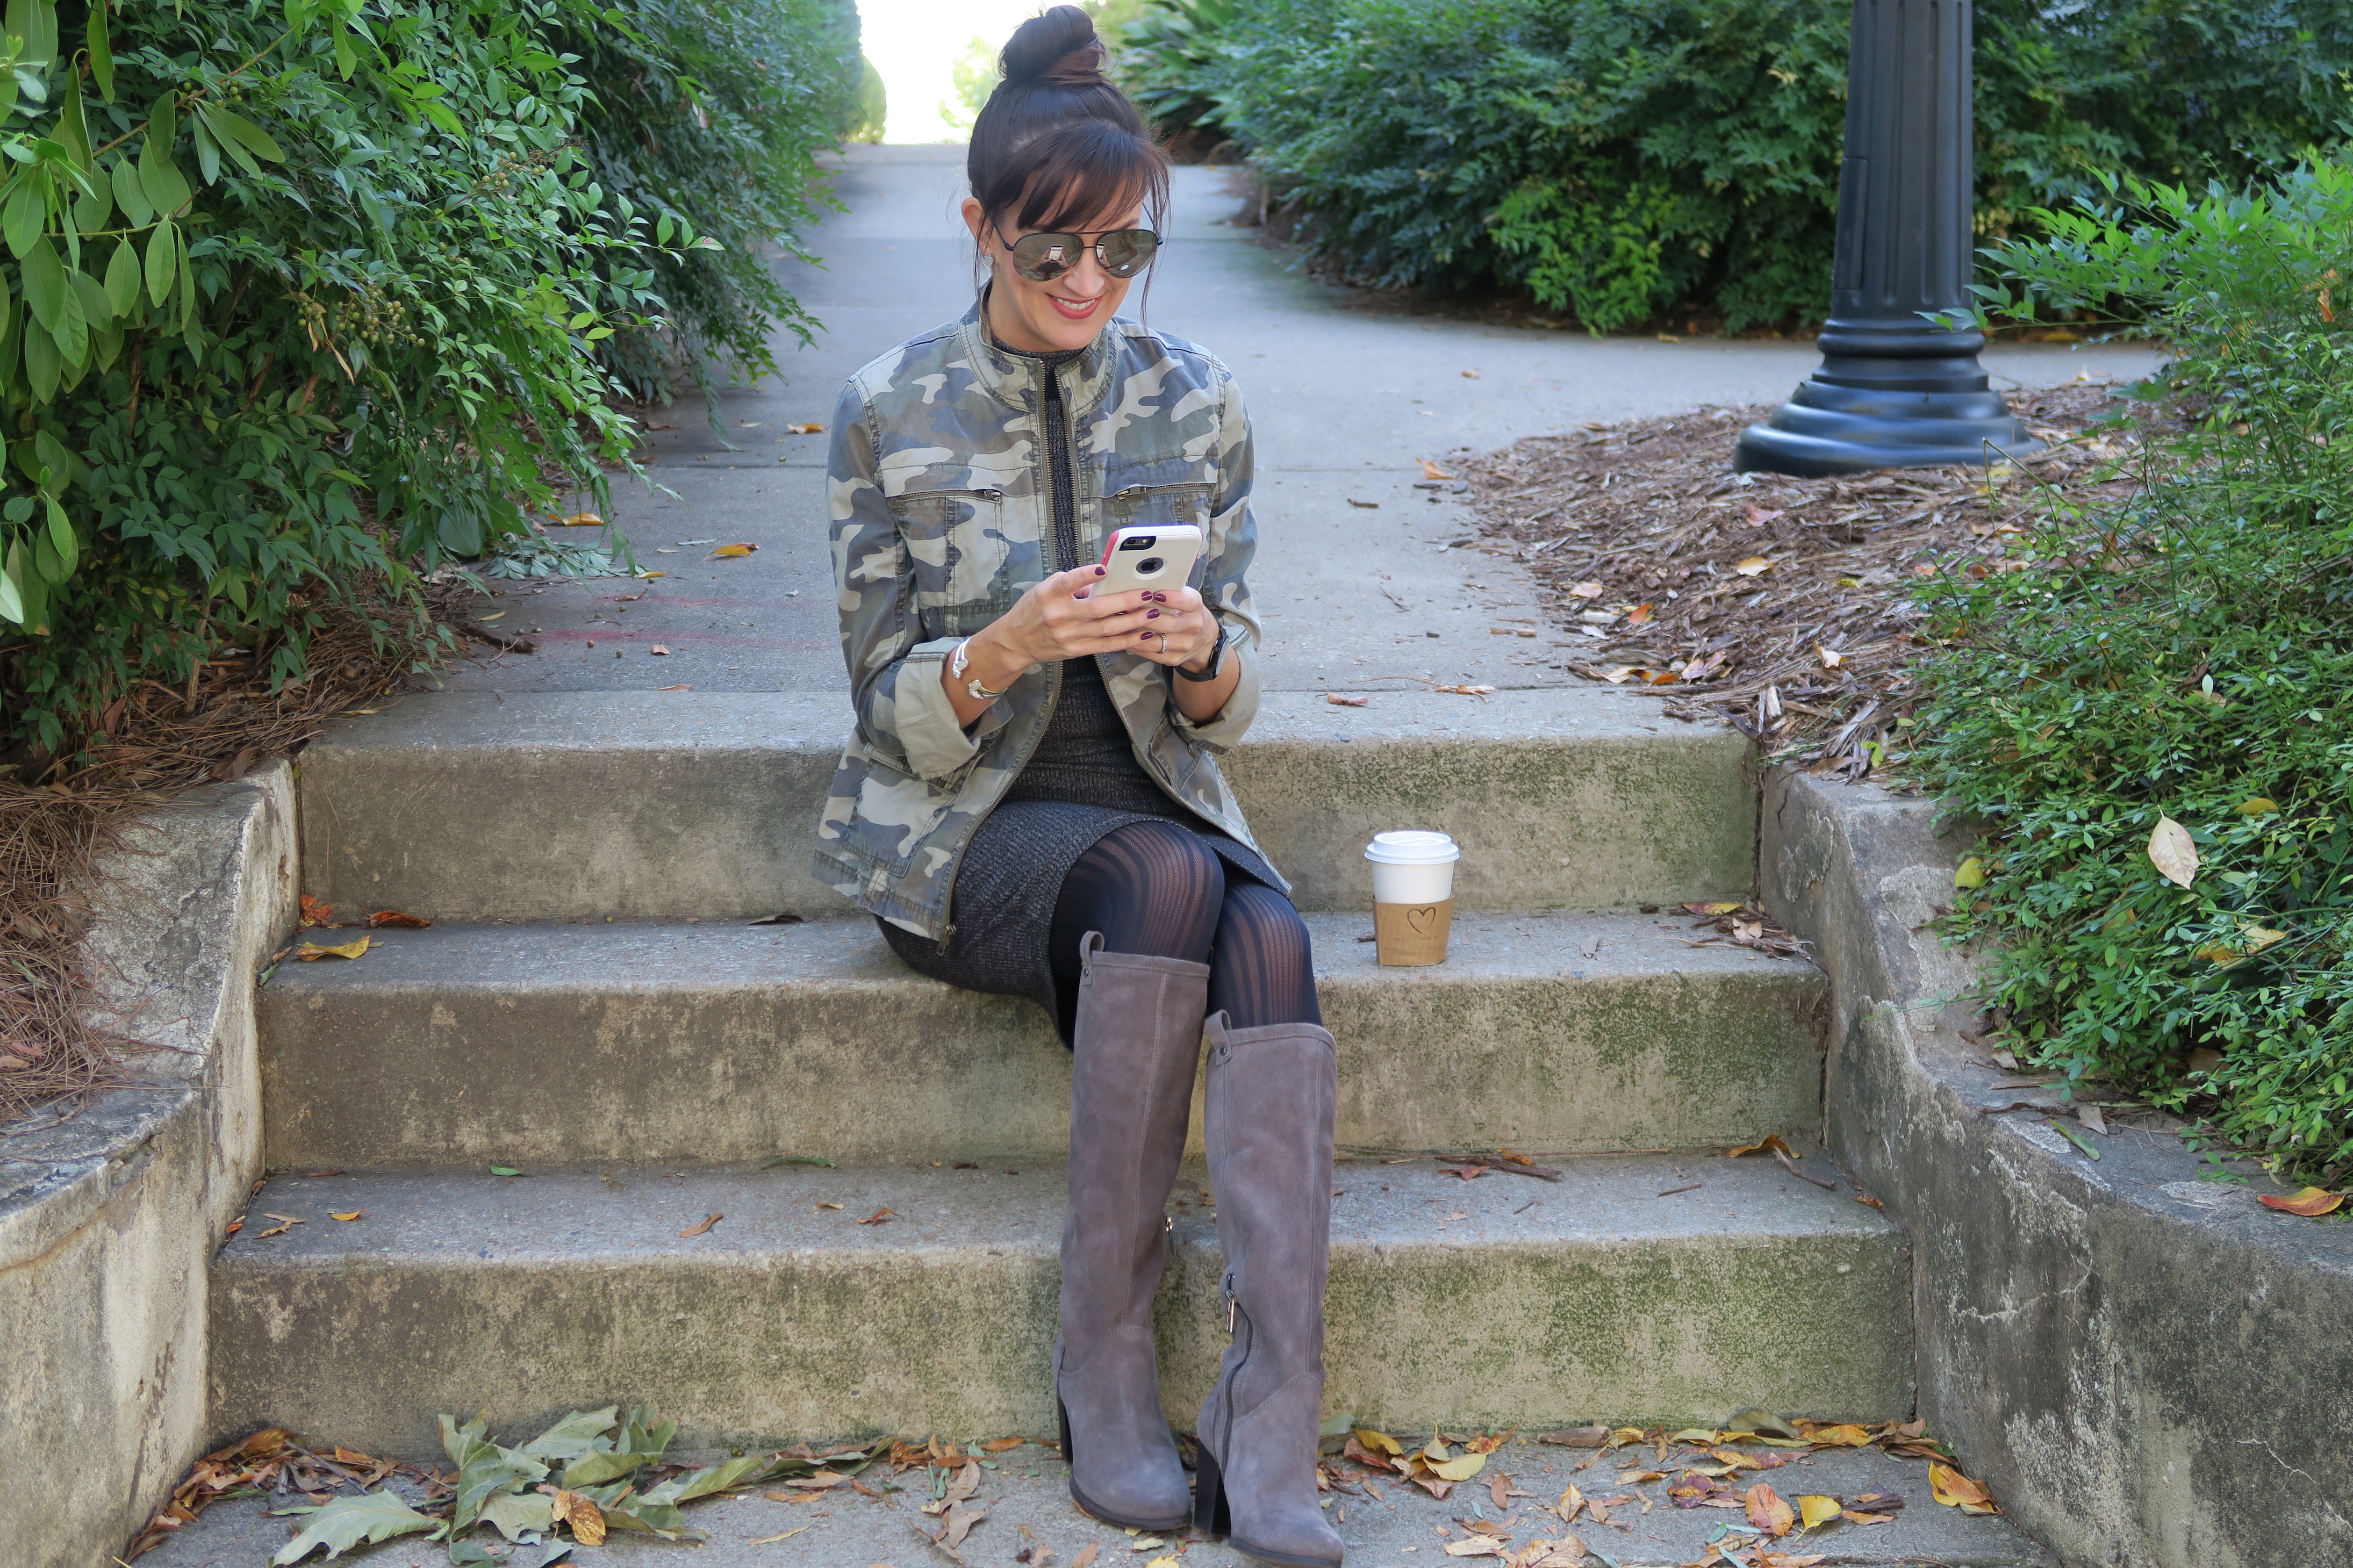 camo-jacket-and-knee-boots-ugg-nordstrom-over-30-style-blog-jennifer-duvall